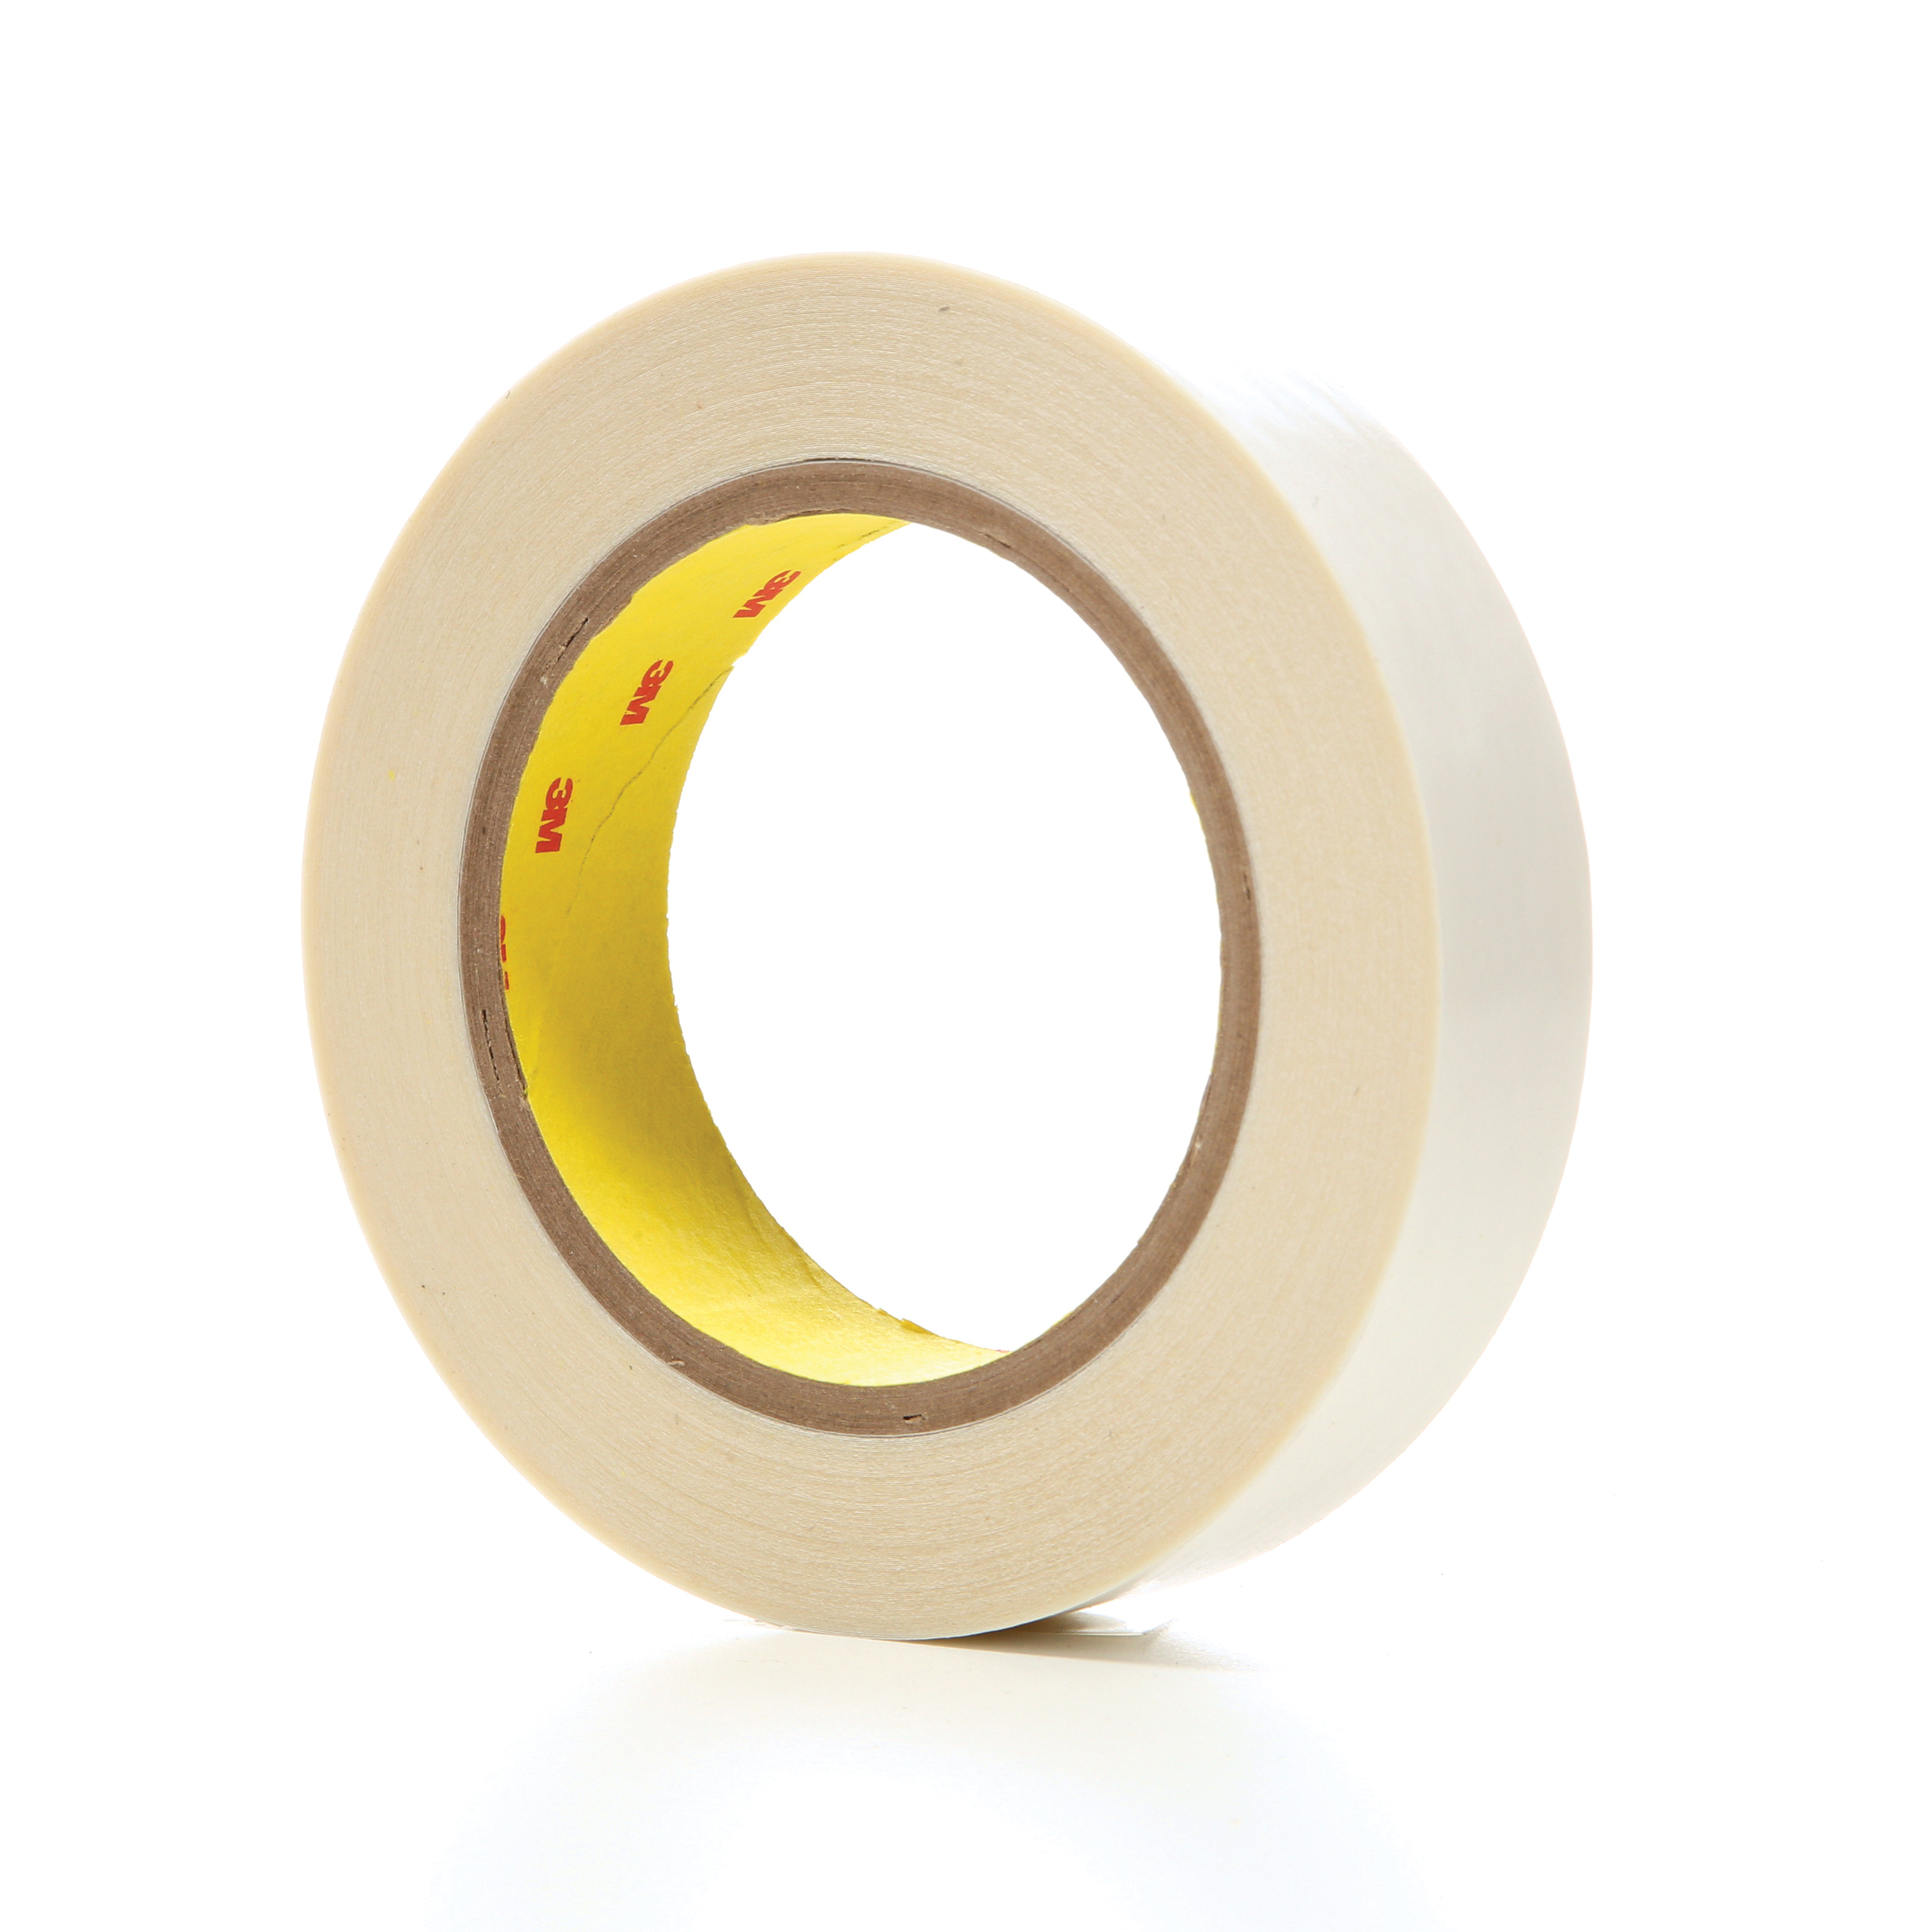 3M™ 021200-04601 Double Coated Film Tape, 36 yd L x 1 in W, 6.9 mil THK, Acrylic Adhesive, Polyester Film Backing, Clear